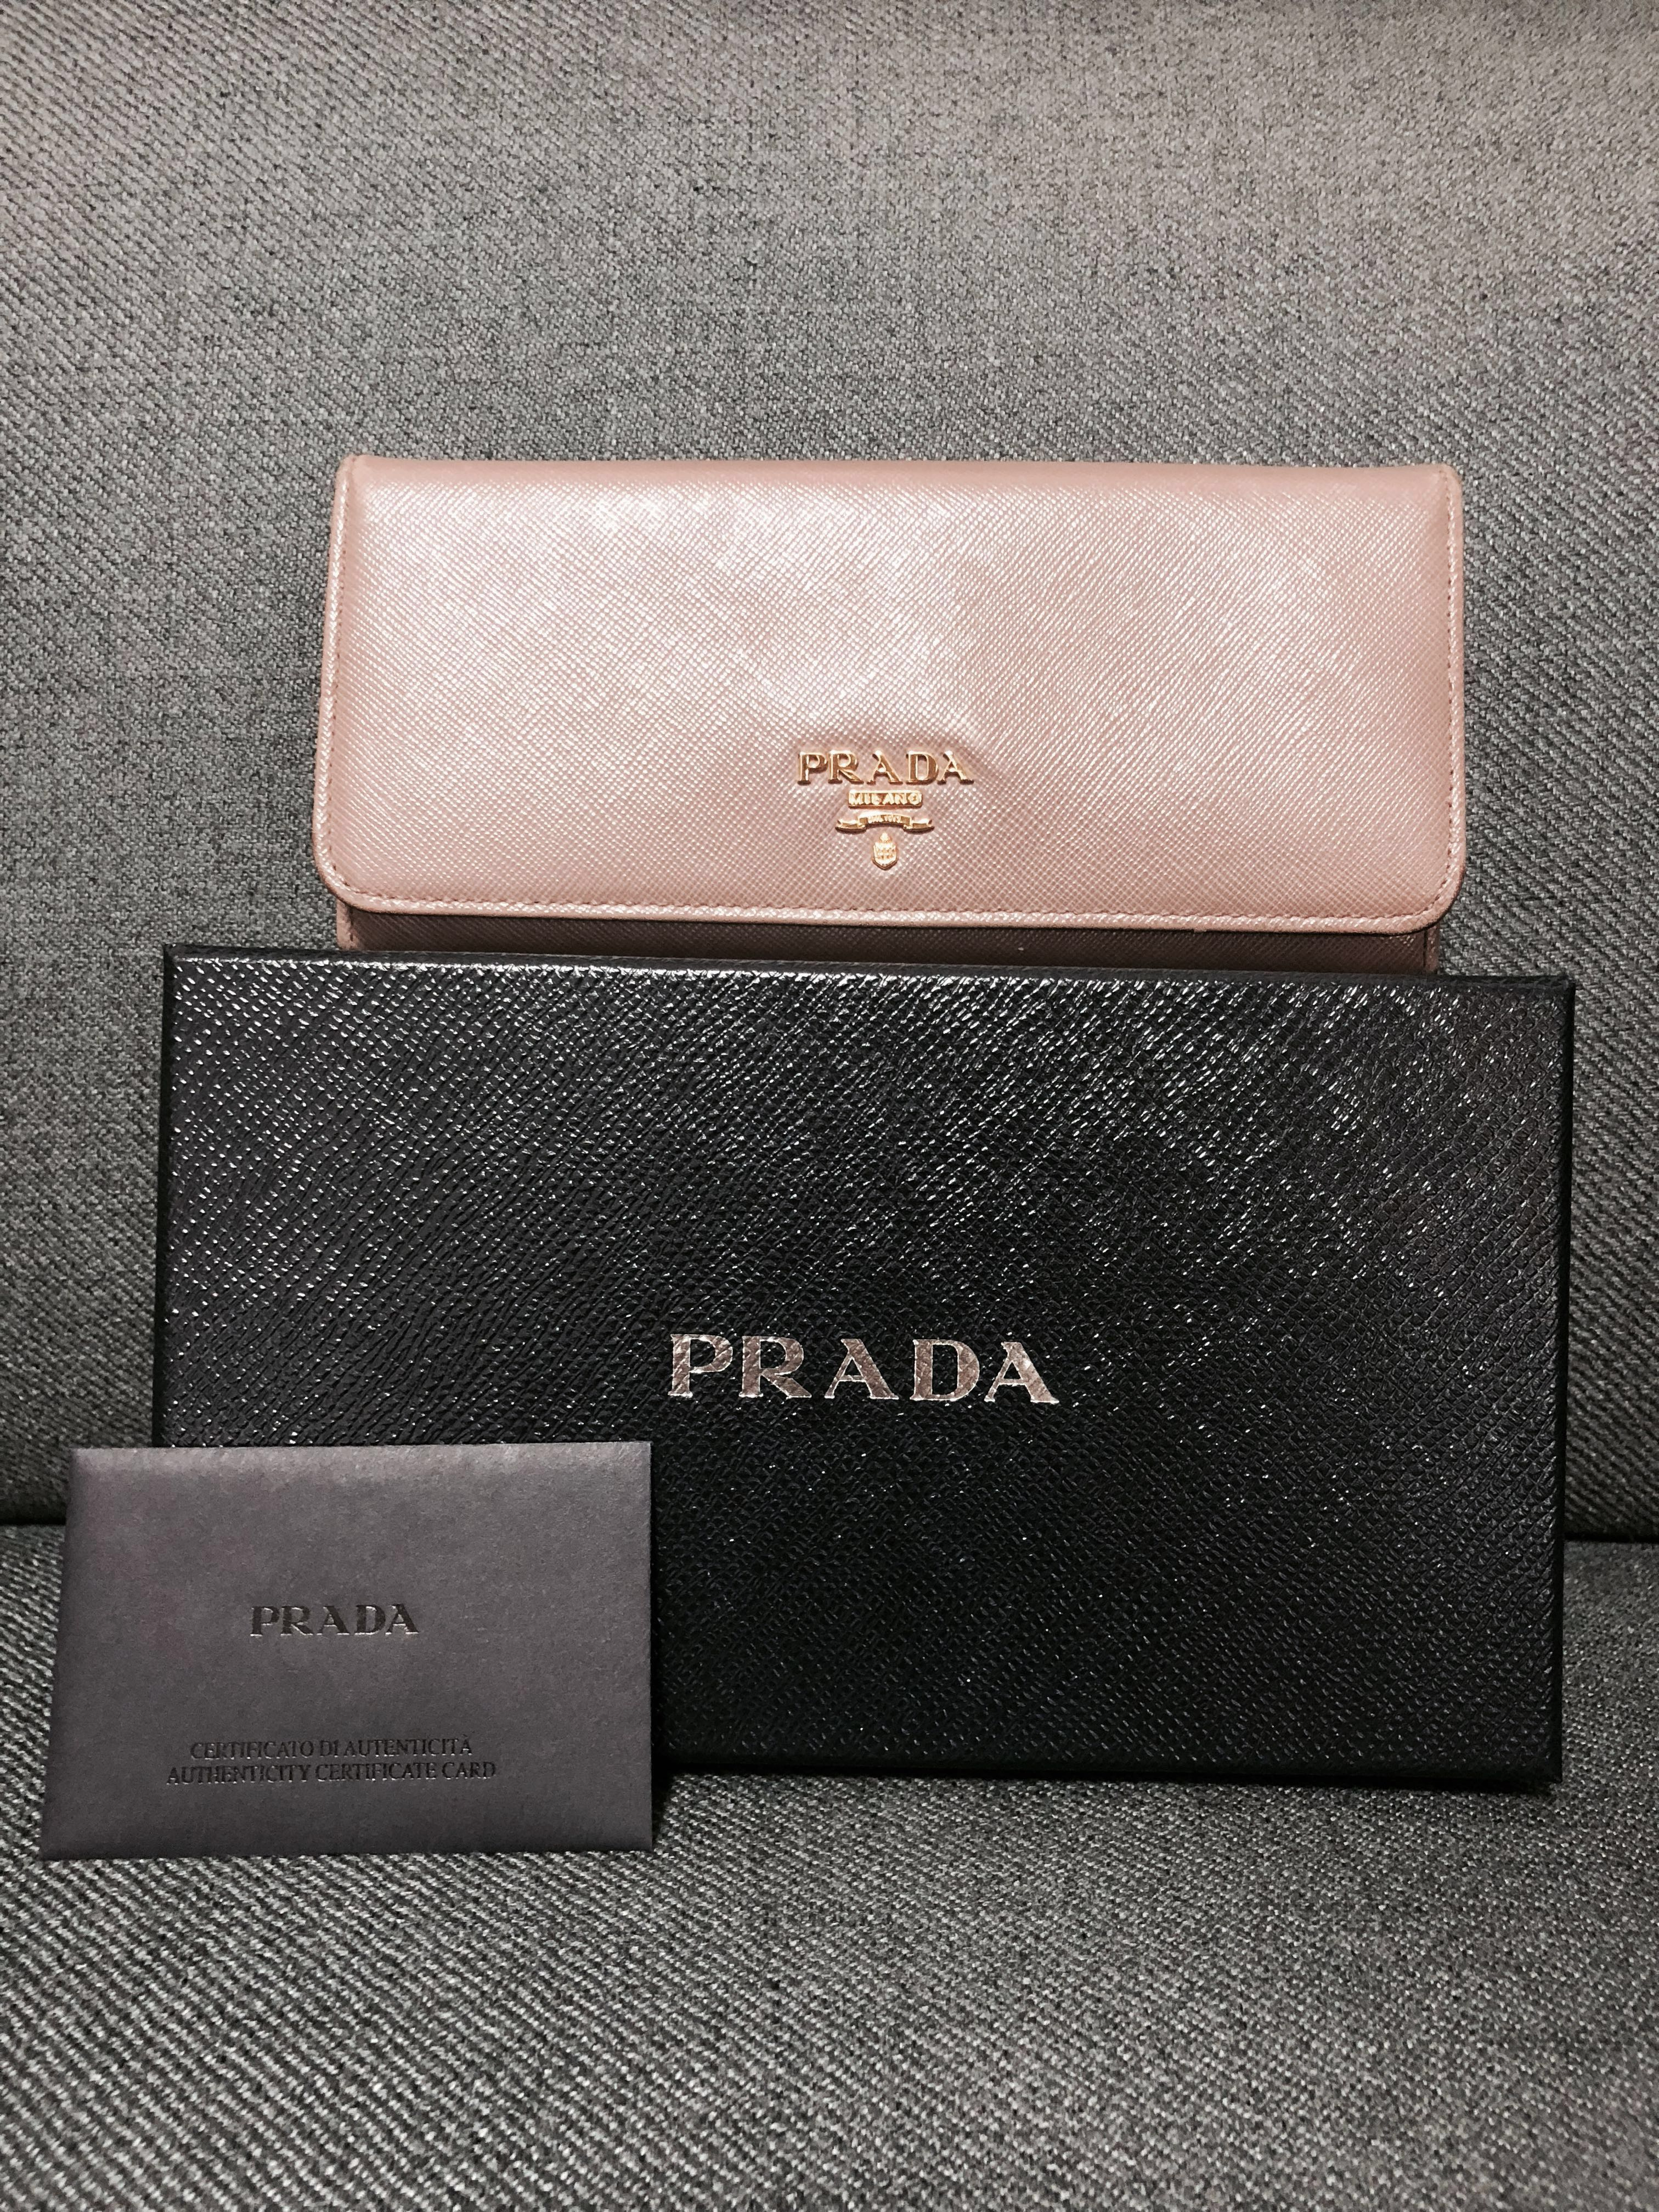 bcd7e45dfc92 ... discount code for prada 1m1132 saffiano leather long fold wallet luxury  bags wallets wallets on carousell